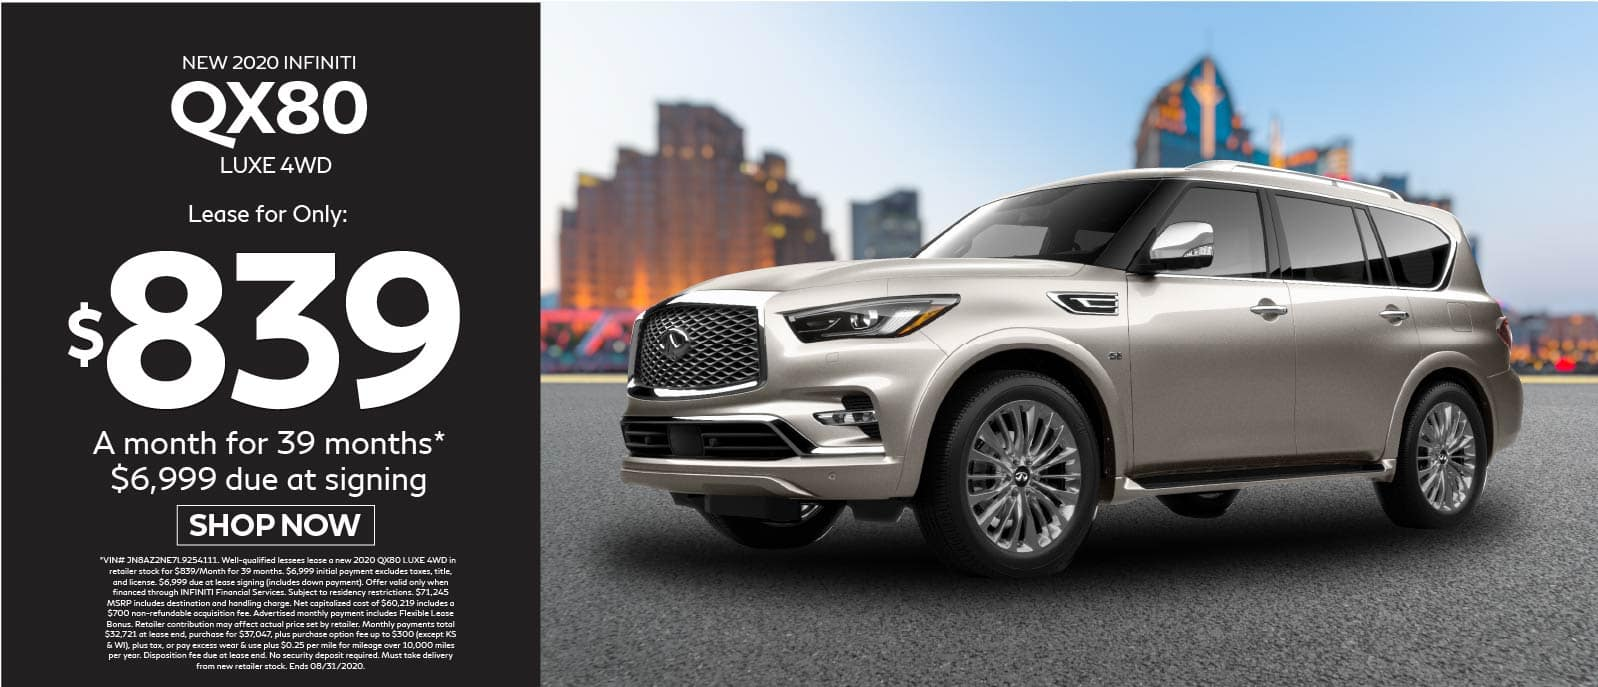 2020 INFINITI QX80 Luxe AWD lease for $839 a month for 39 months $6999 due at signing. Shop Now.